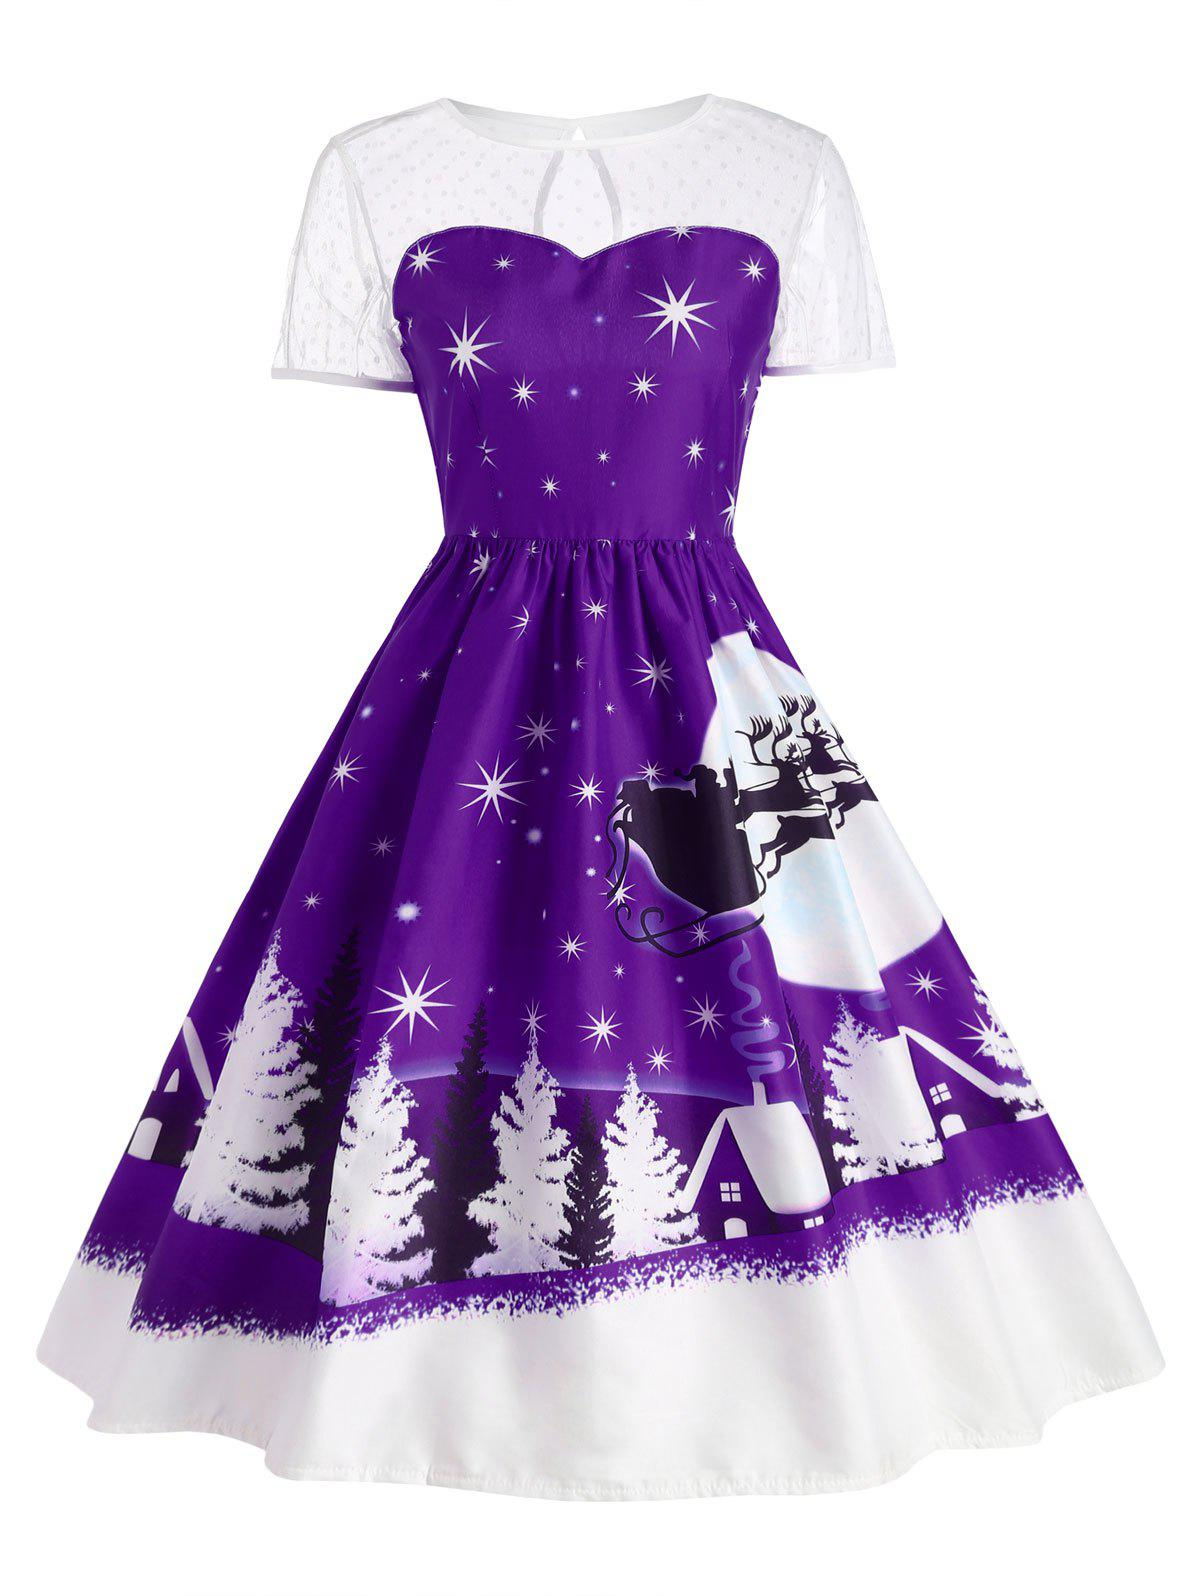 Santa Claus Deer Vintage Christmas DressWOMEN<br><br>Size: S; Color: CONCORD; Style: Cute; Material: Polyester; Silhouette: Ball Gown; Dresses Length: Mid-Calf; Neckline: Round Collar; Sleeve Length: Short Sleeves; Pattern Type: Print; With Belt: No; Season: Fall,Winter; Weight: 0.2400kg; Package Contents: 1 x Dress;